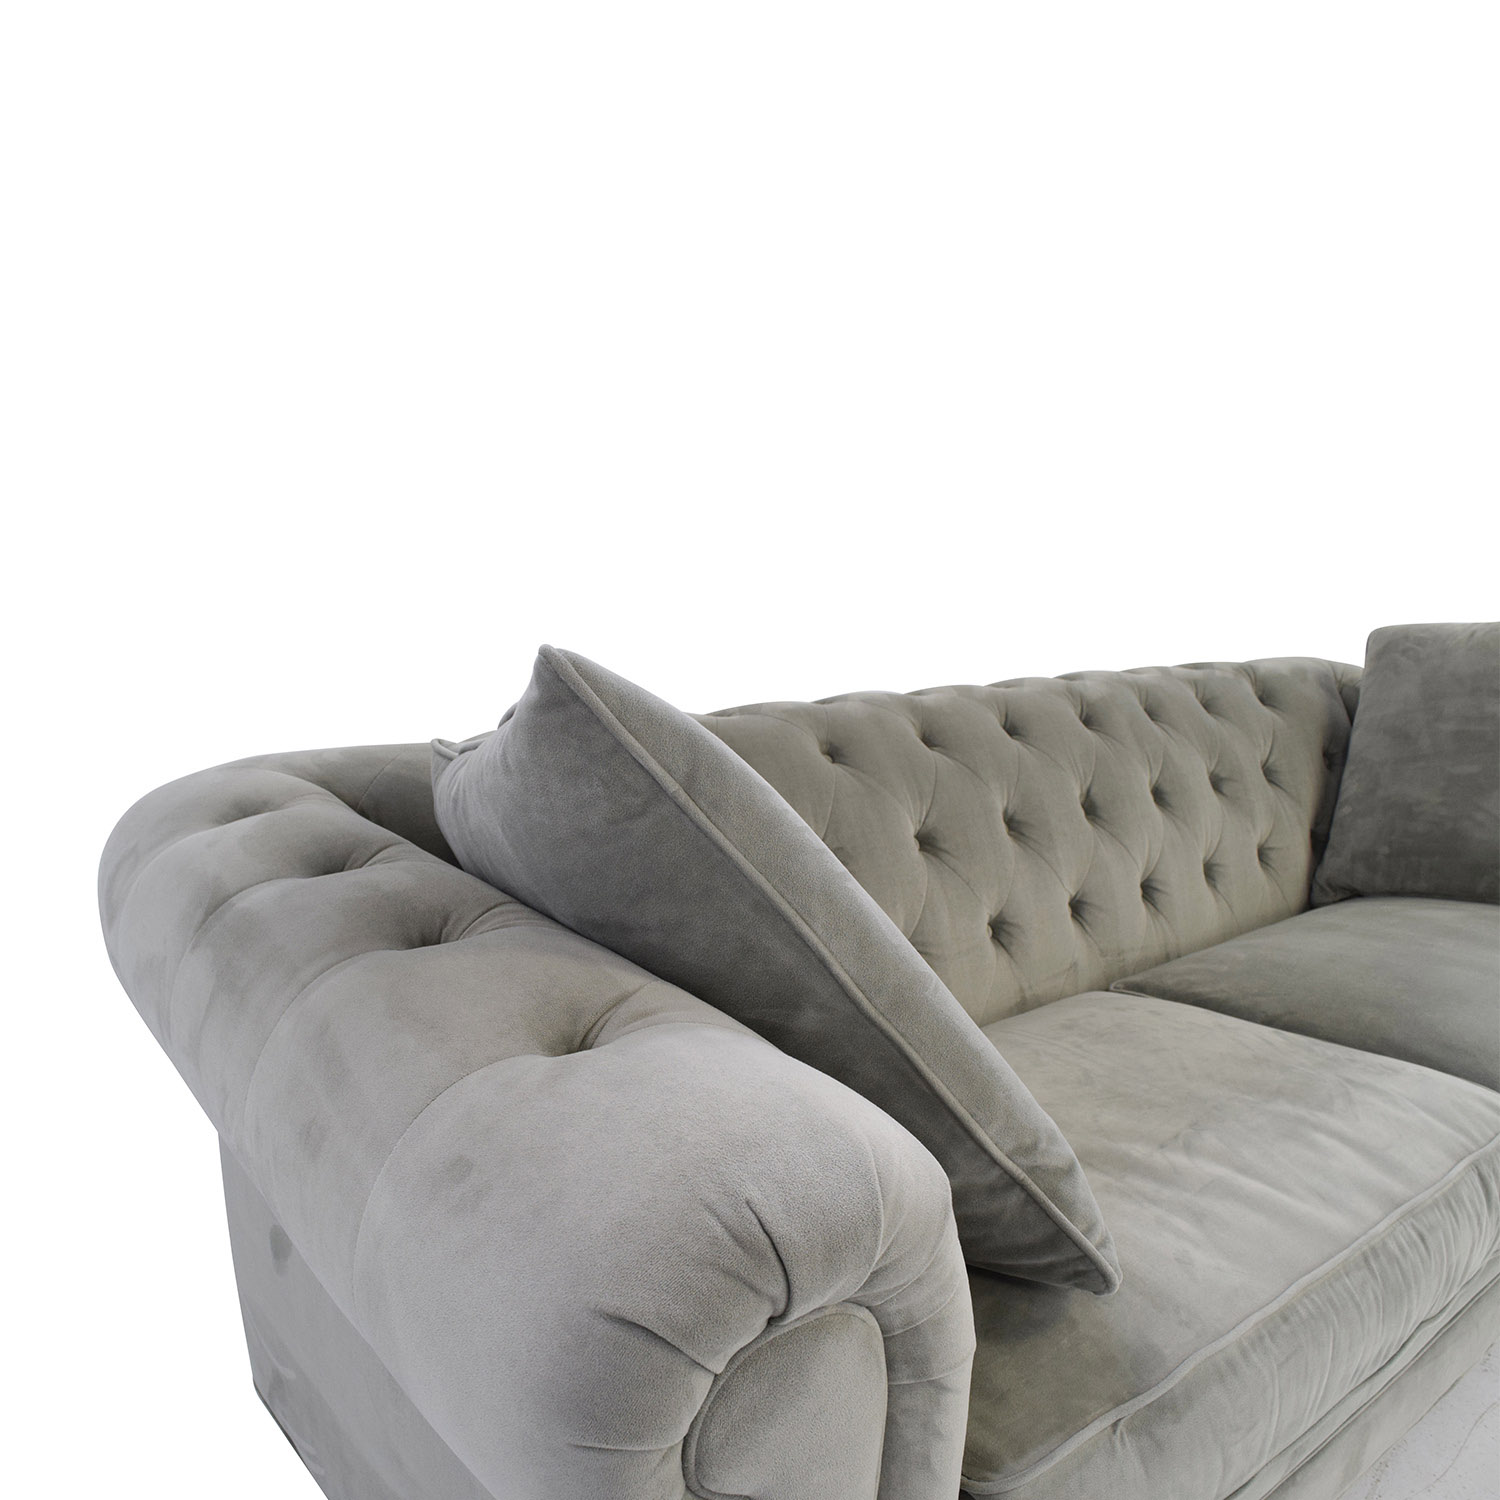 Saybridge sofa macys for Schlafsofa second hand